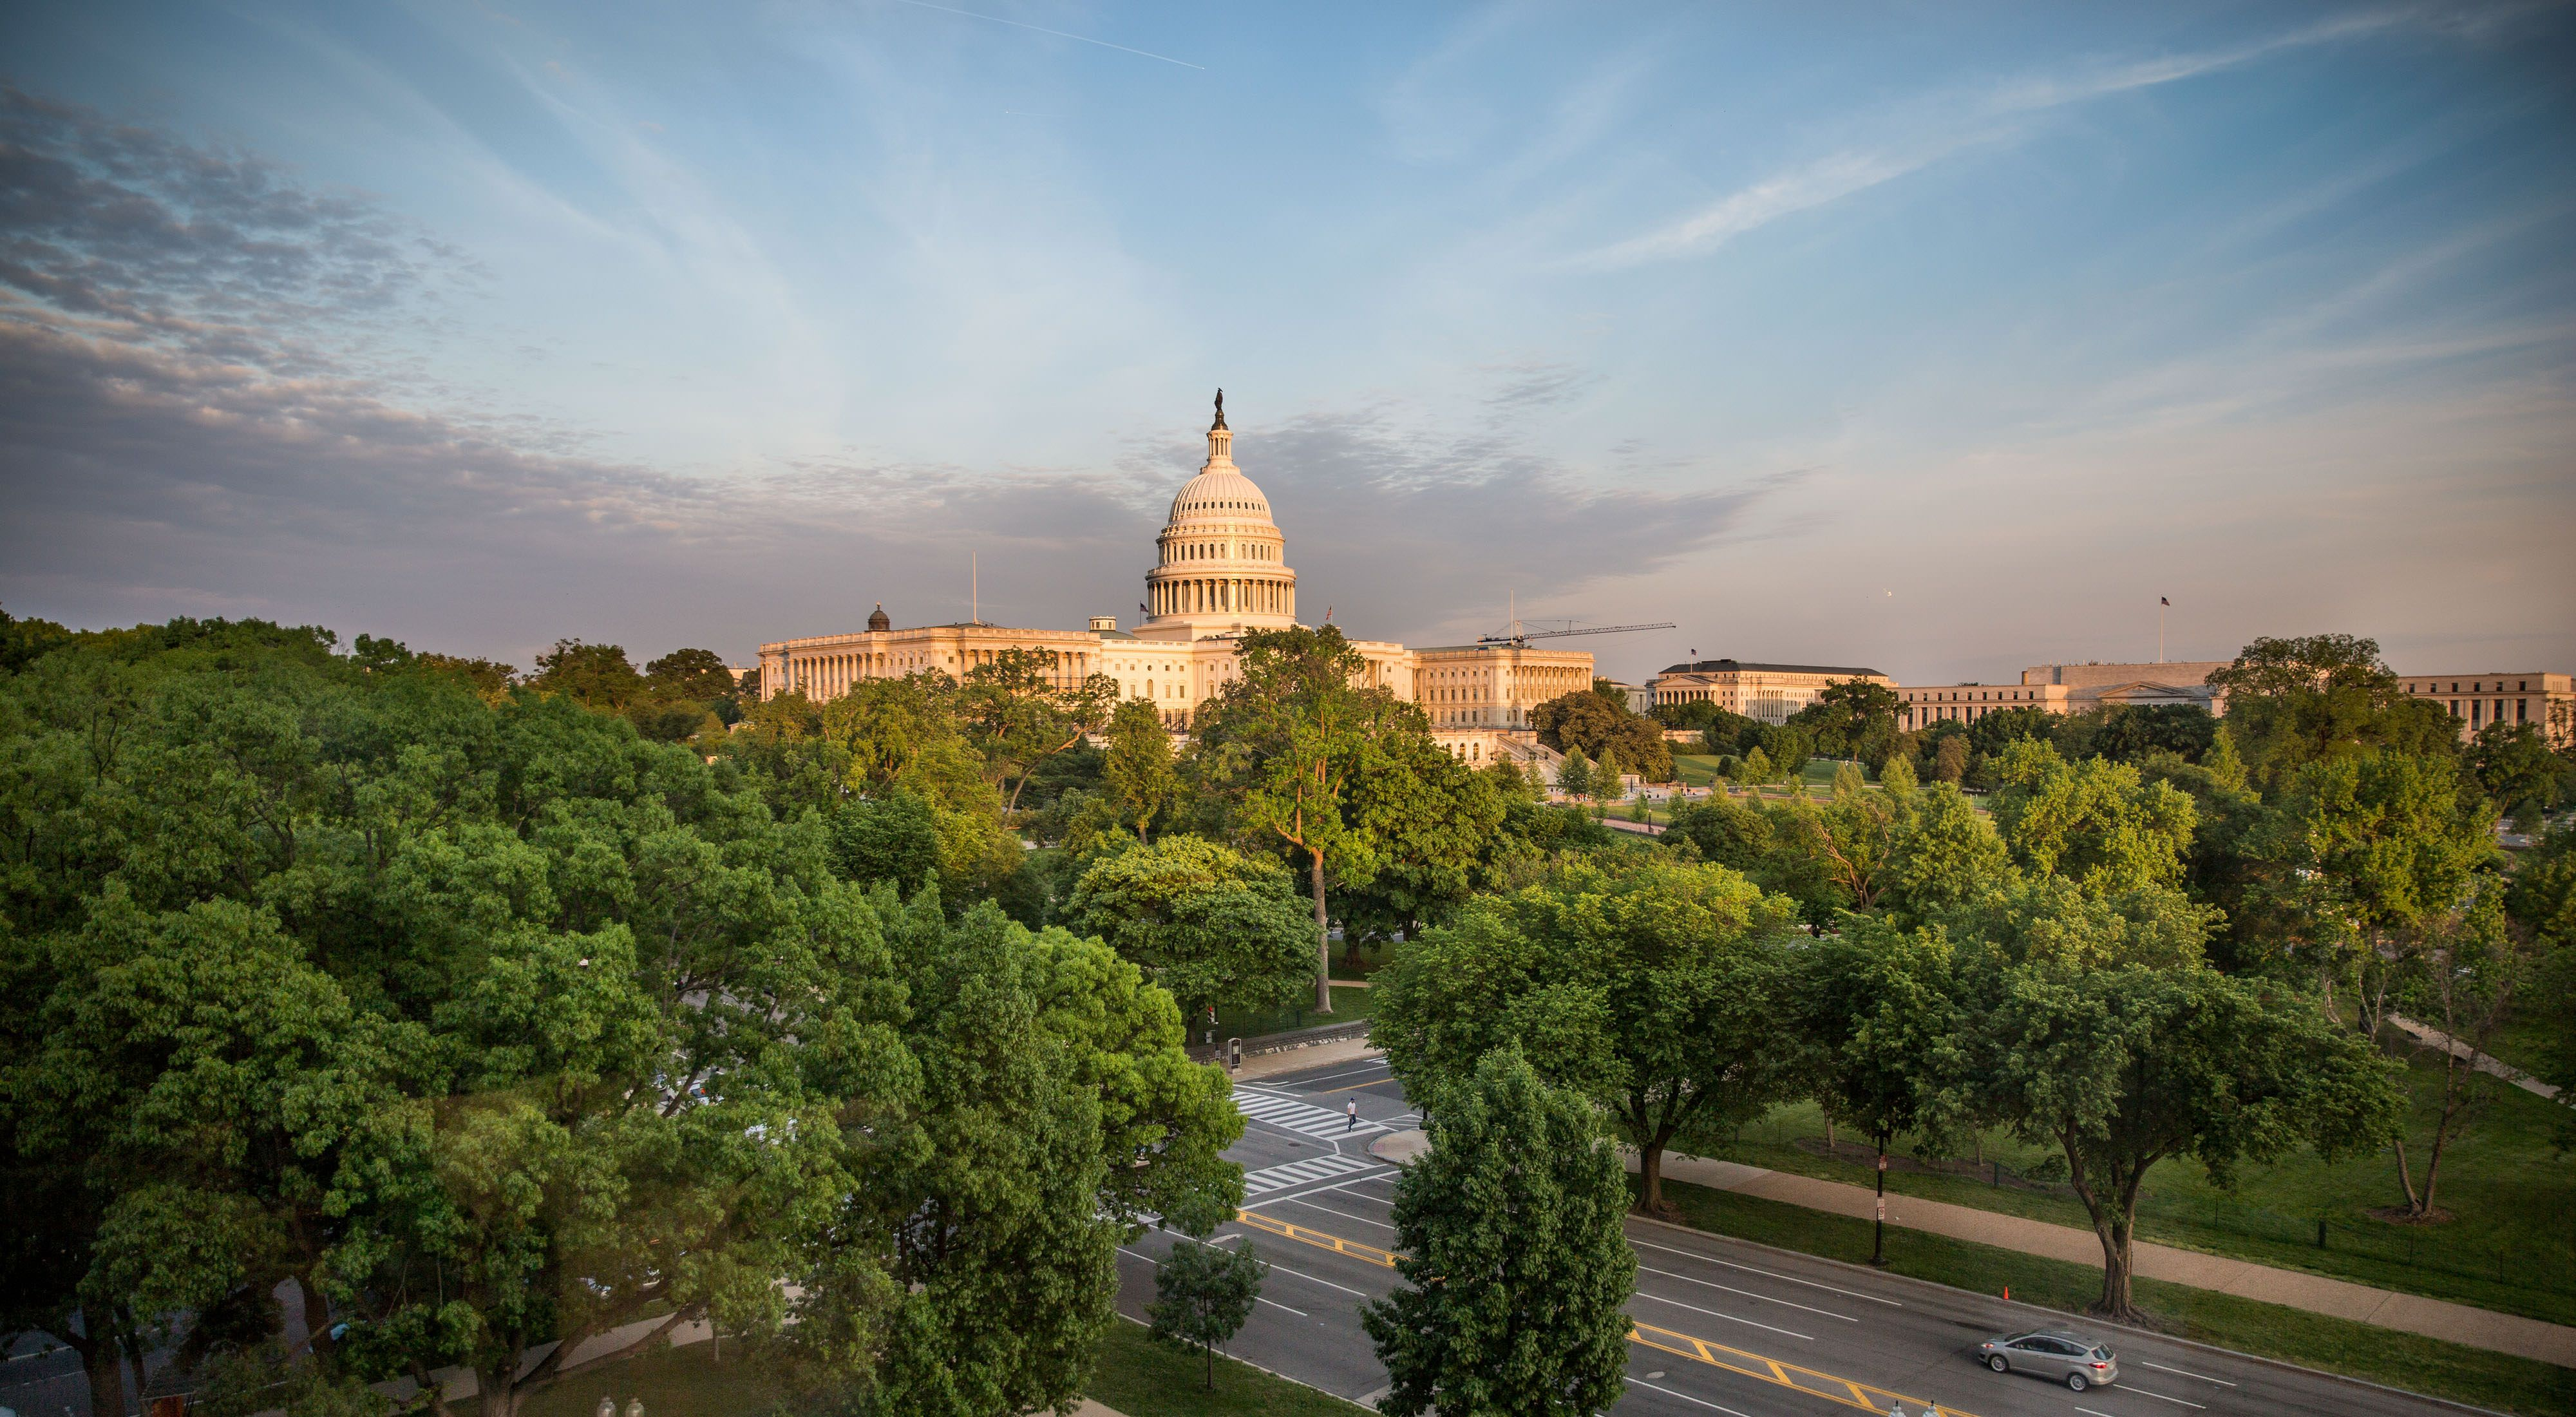 The United States Capitol in Washington, DC, USA.